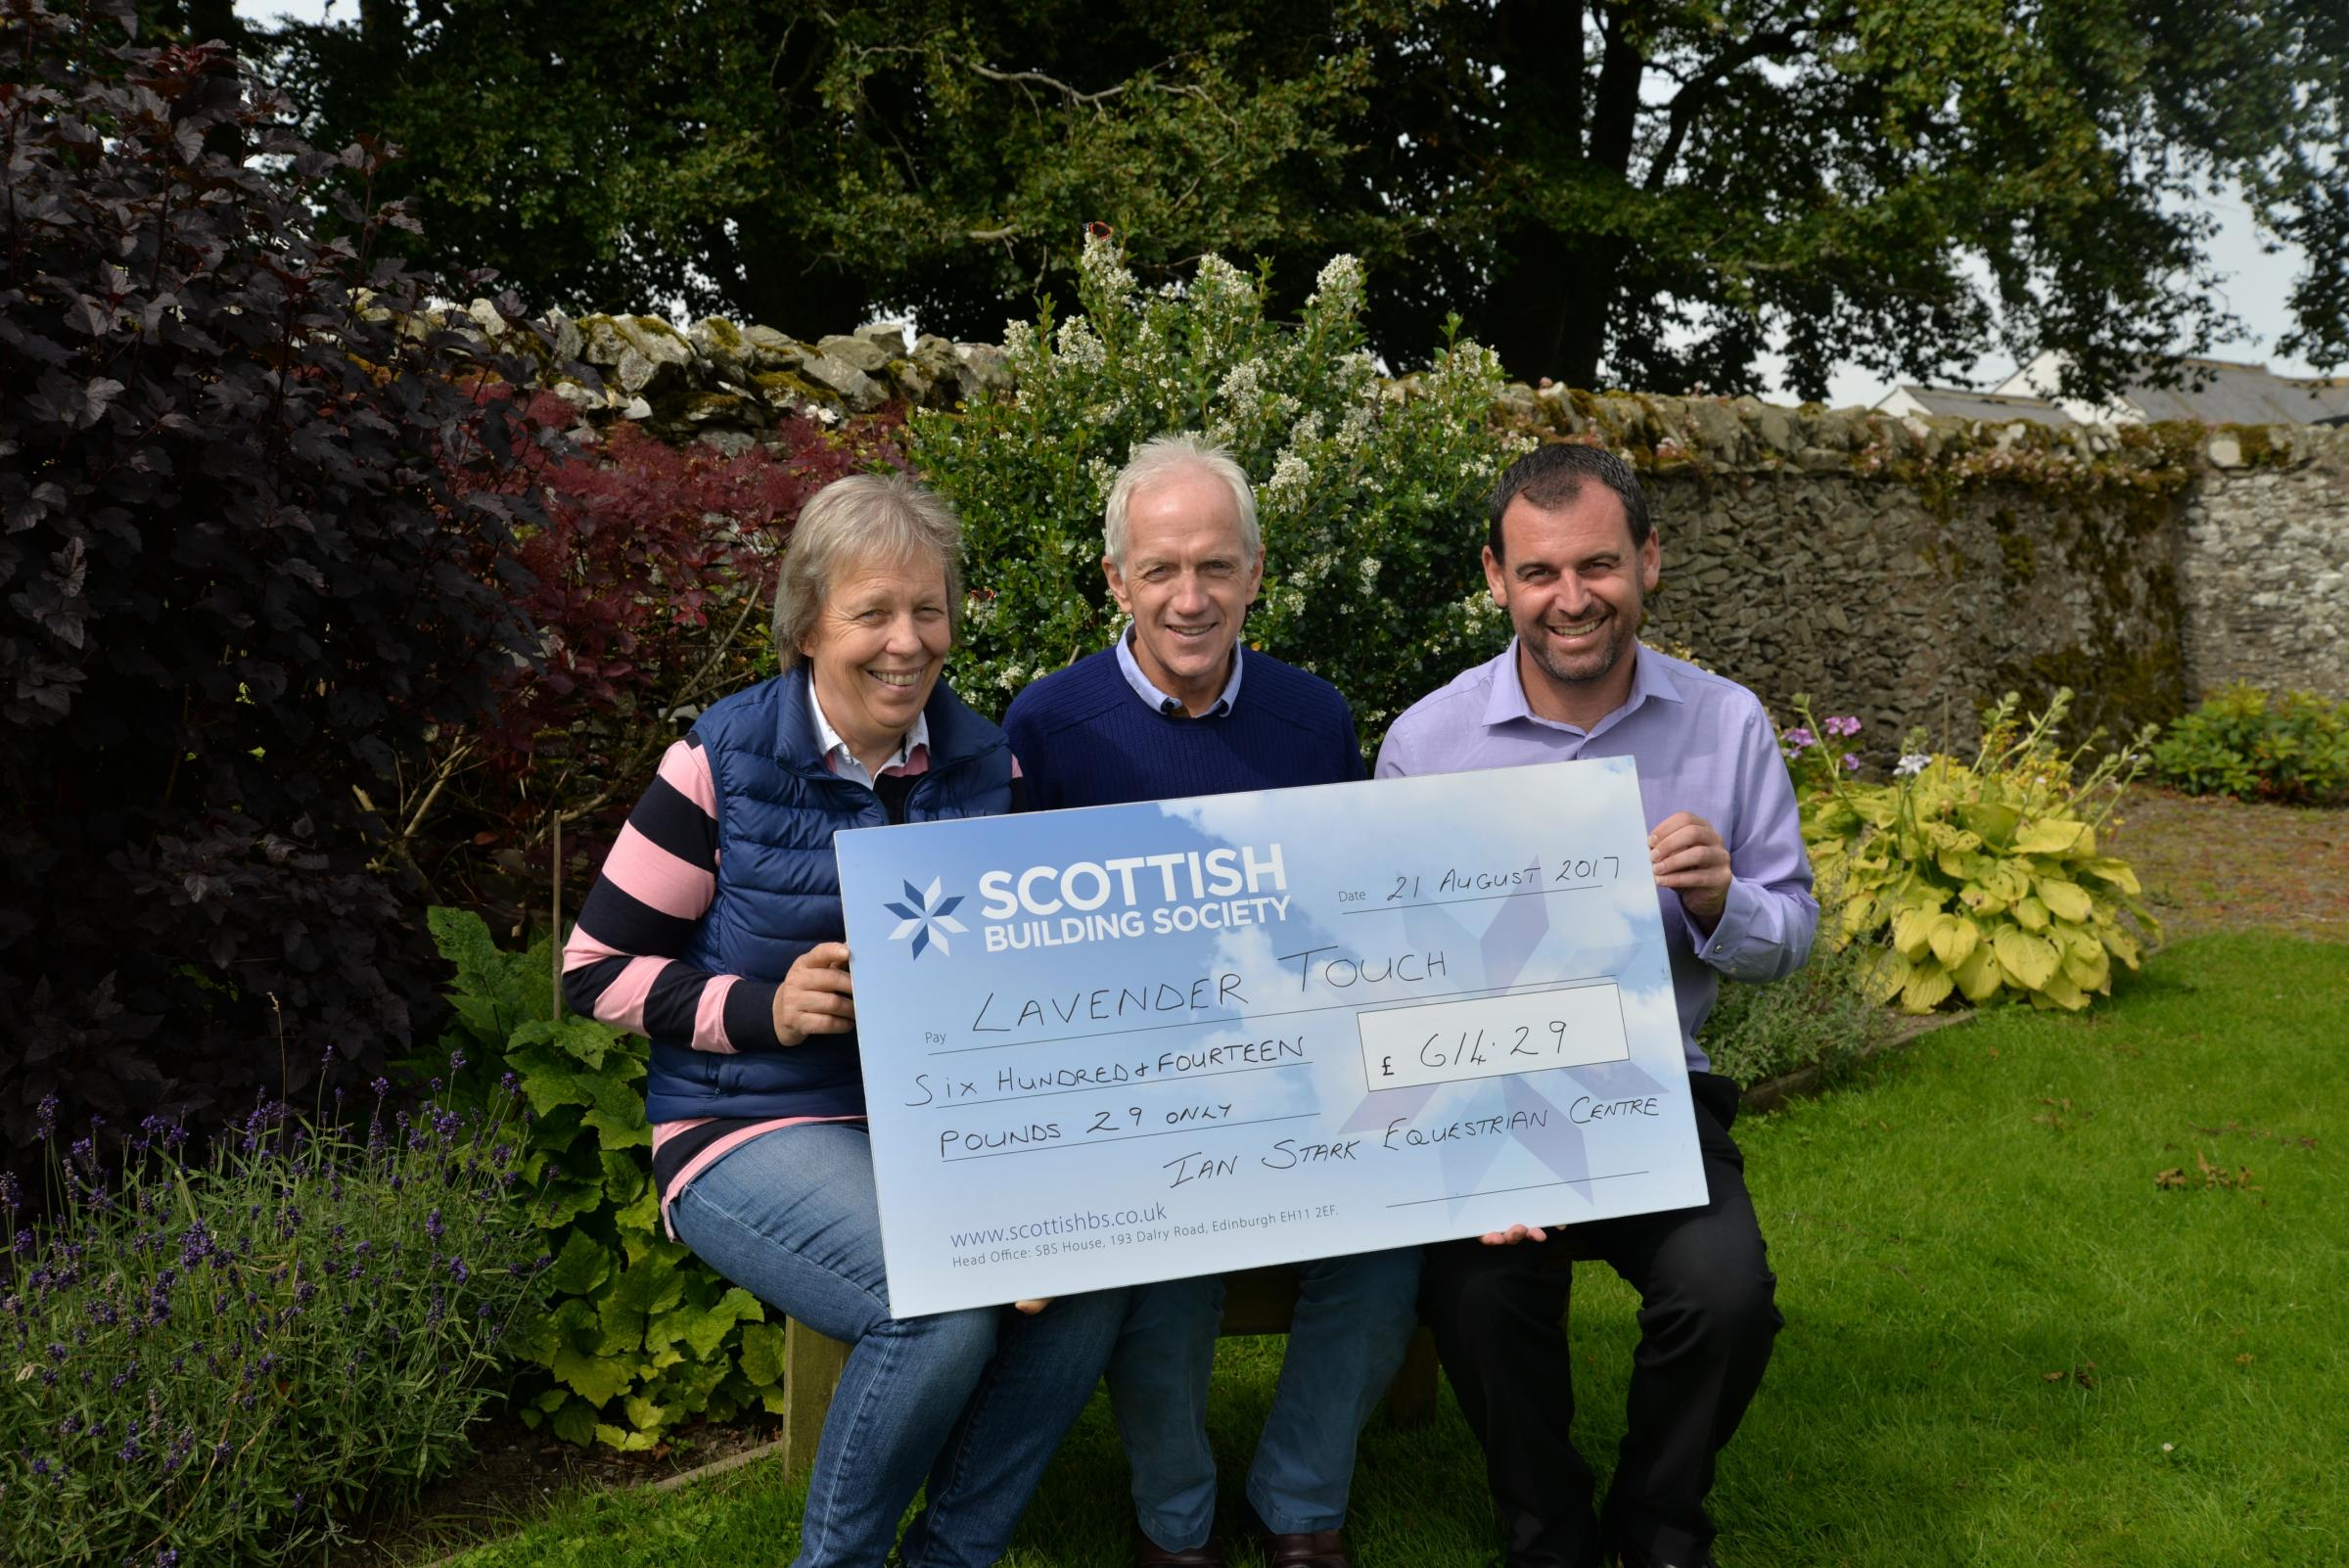 Alex Moffat (Lavender Touch) being presented with a cheque by Jenni and Ian Stark (Ian Stark Equestrian Centre)